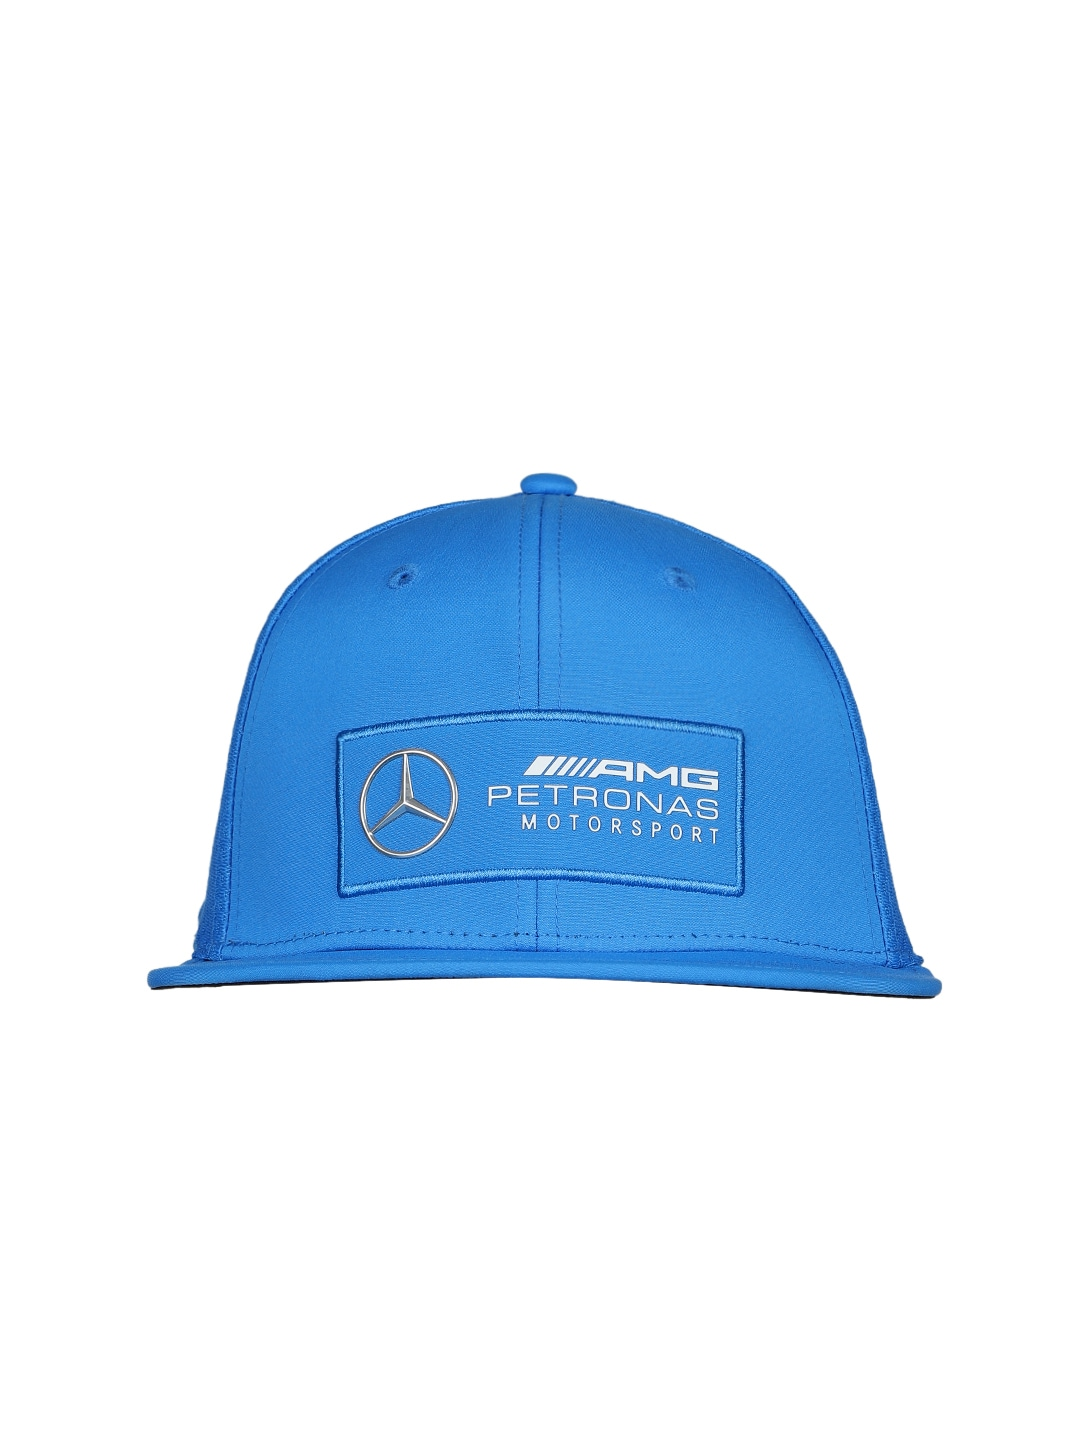 8ce02218633 Puma Blue Caps - Buy Puma Blue Caps online in India